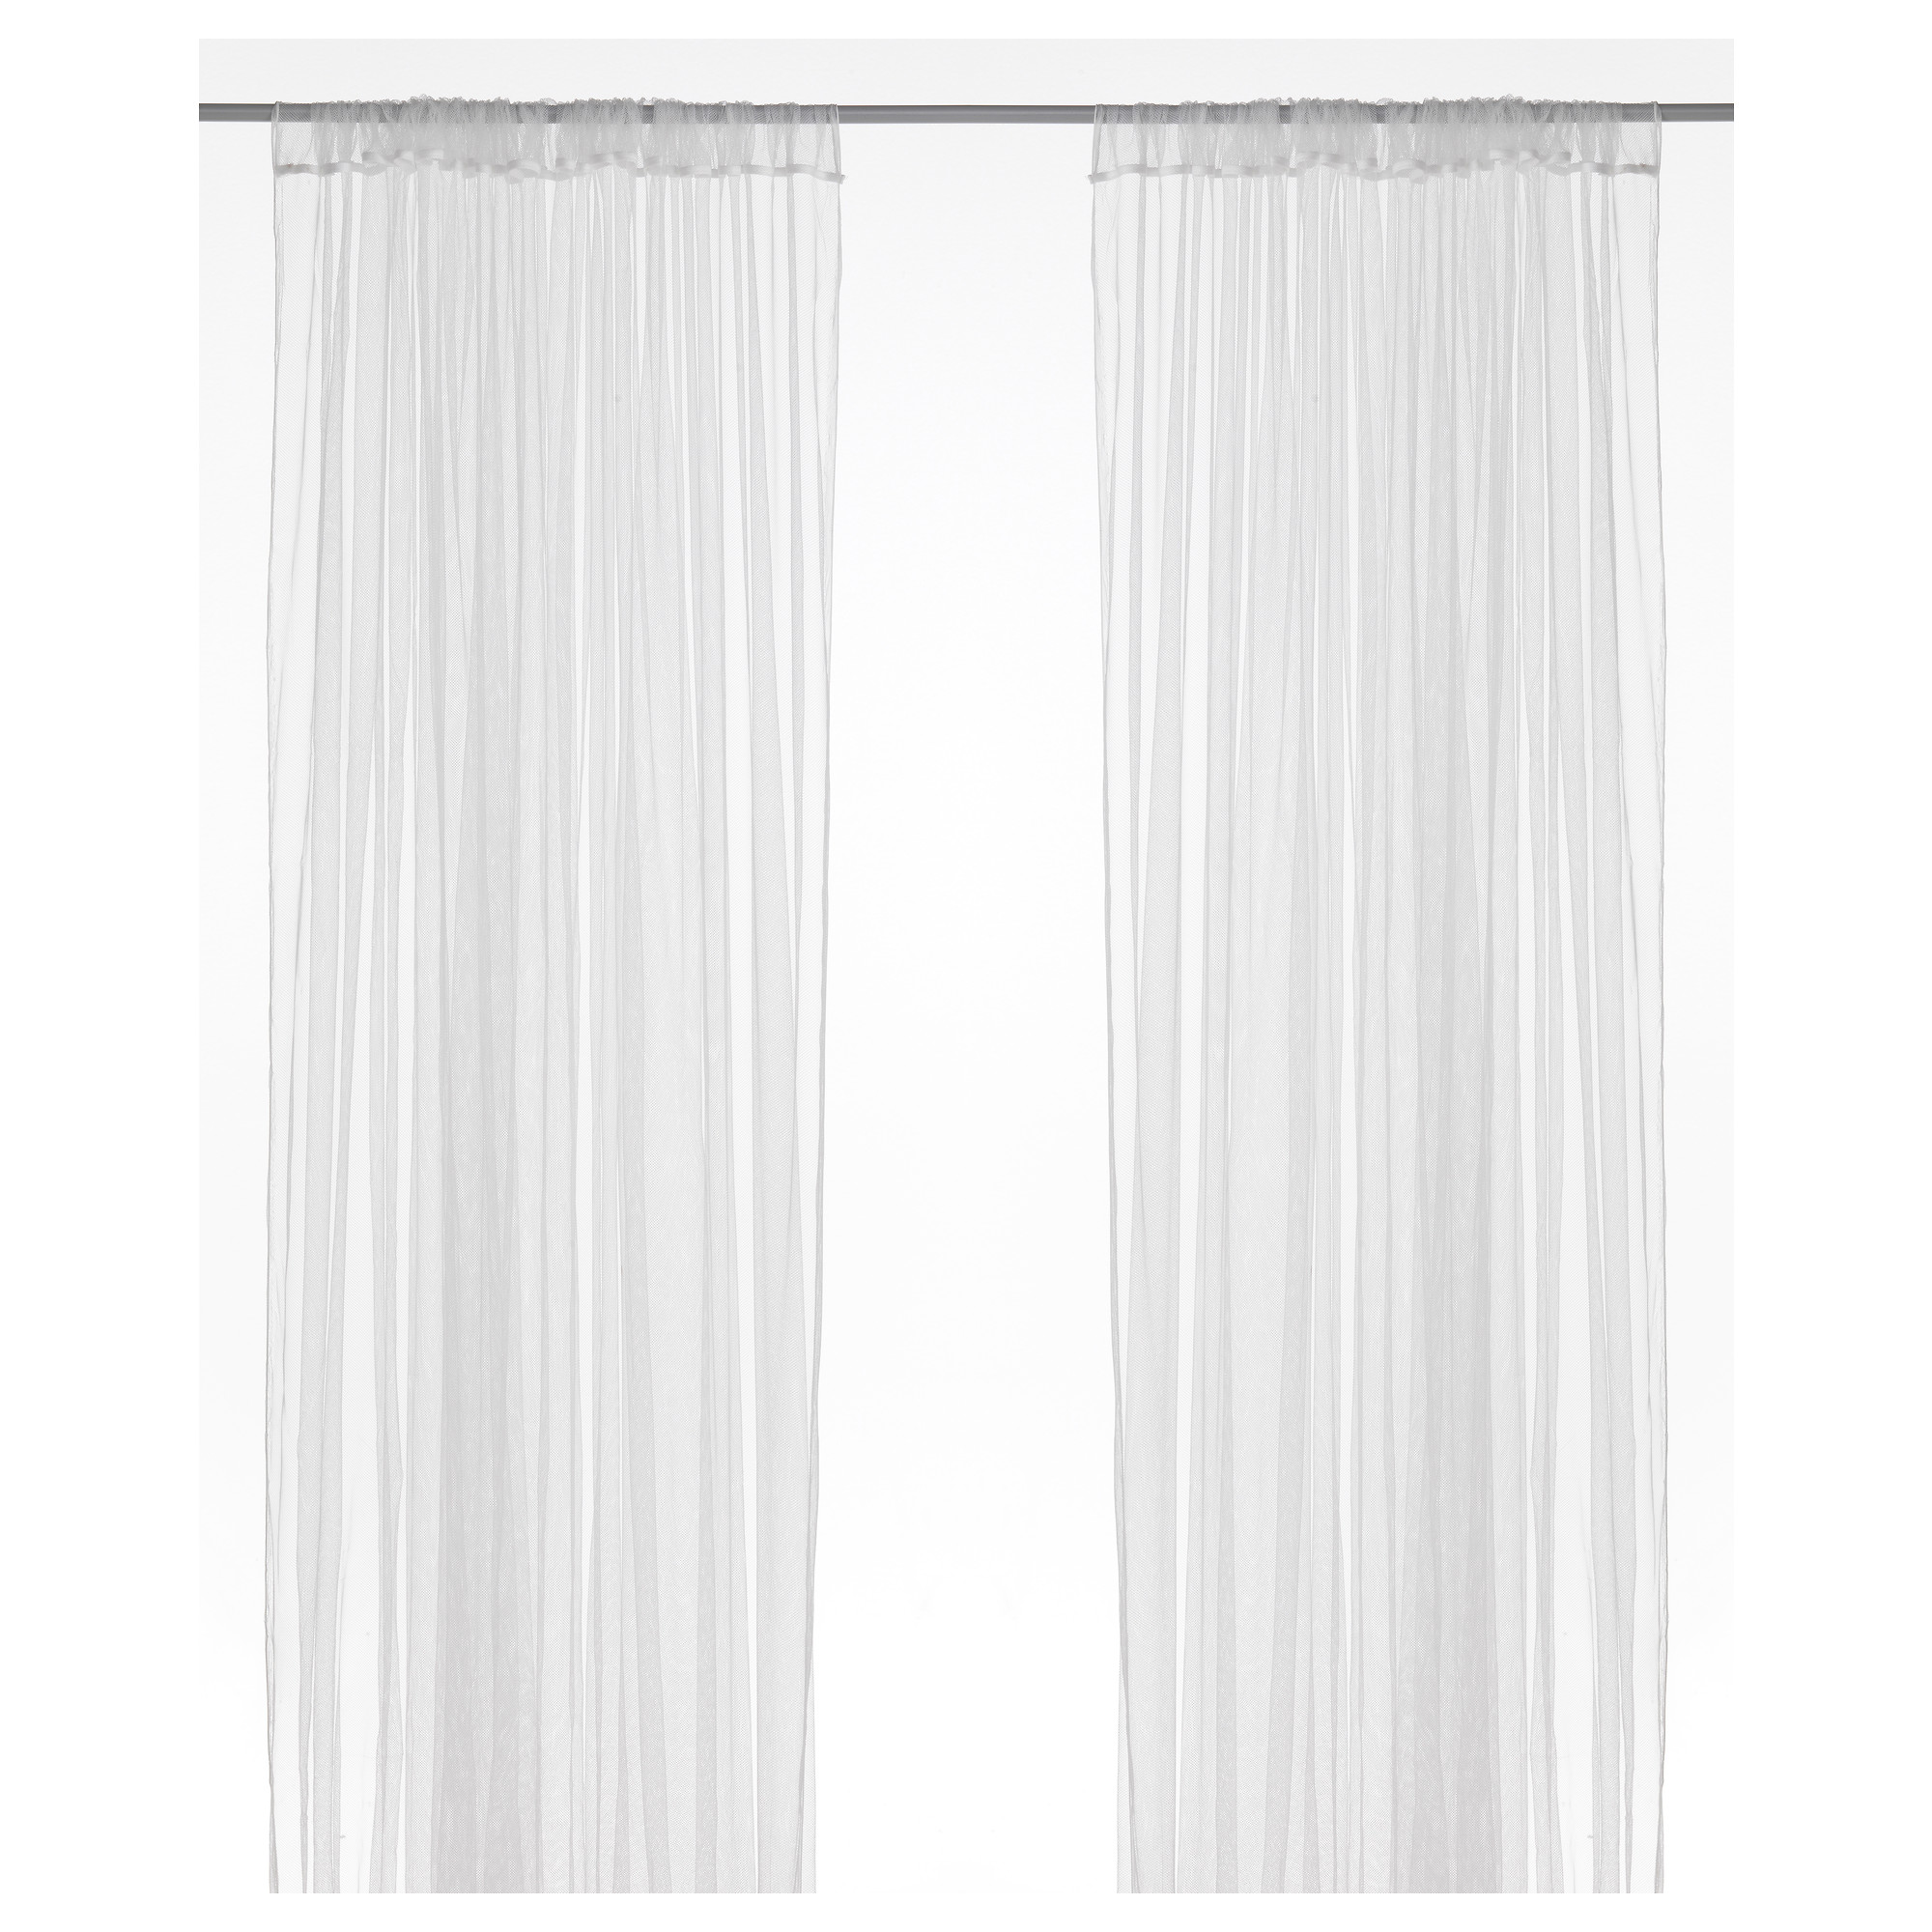 lill lace curtains 1 pair ikea - White Sheer Curtains